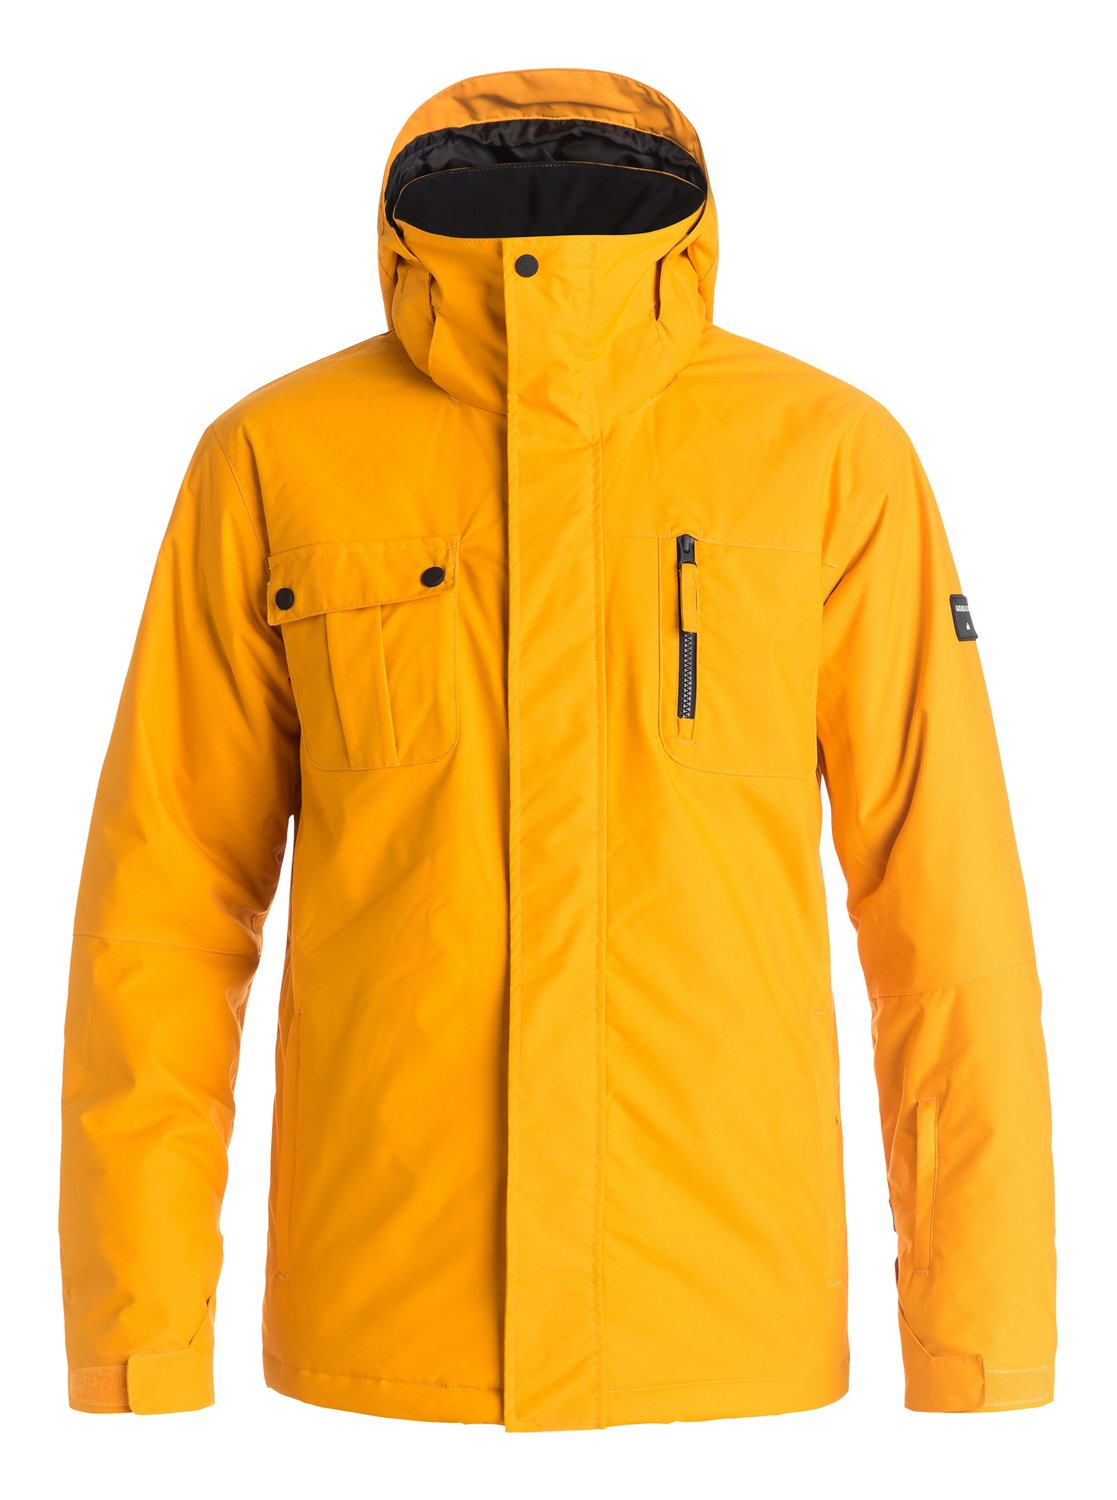 Сноубордическая куртка Mission SolidThe Mission Solid snow jacket is the king of simple style with its bold block colourways. An easy-to-wear regular fit allows space to layer and is complemented by 10K Quiksilver DryFlight® technology waterproofing, Warmflight® level 2 insulation for low-bulk warmth, a taffeta and mesh lining with brushed tricot panels, and critically-taped seams for extra protection in the most exposed areas.<br>